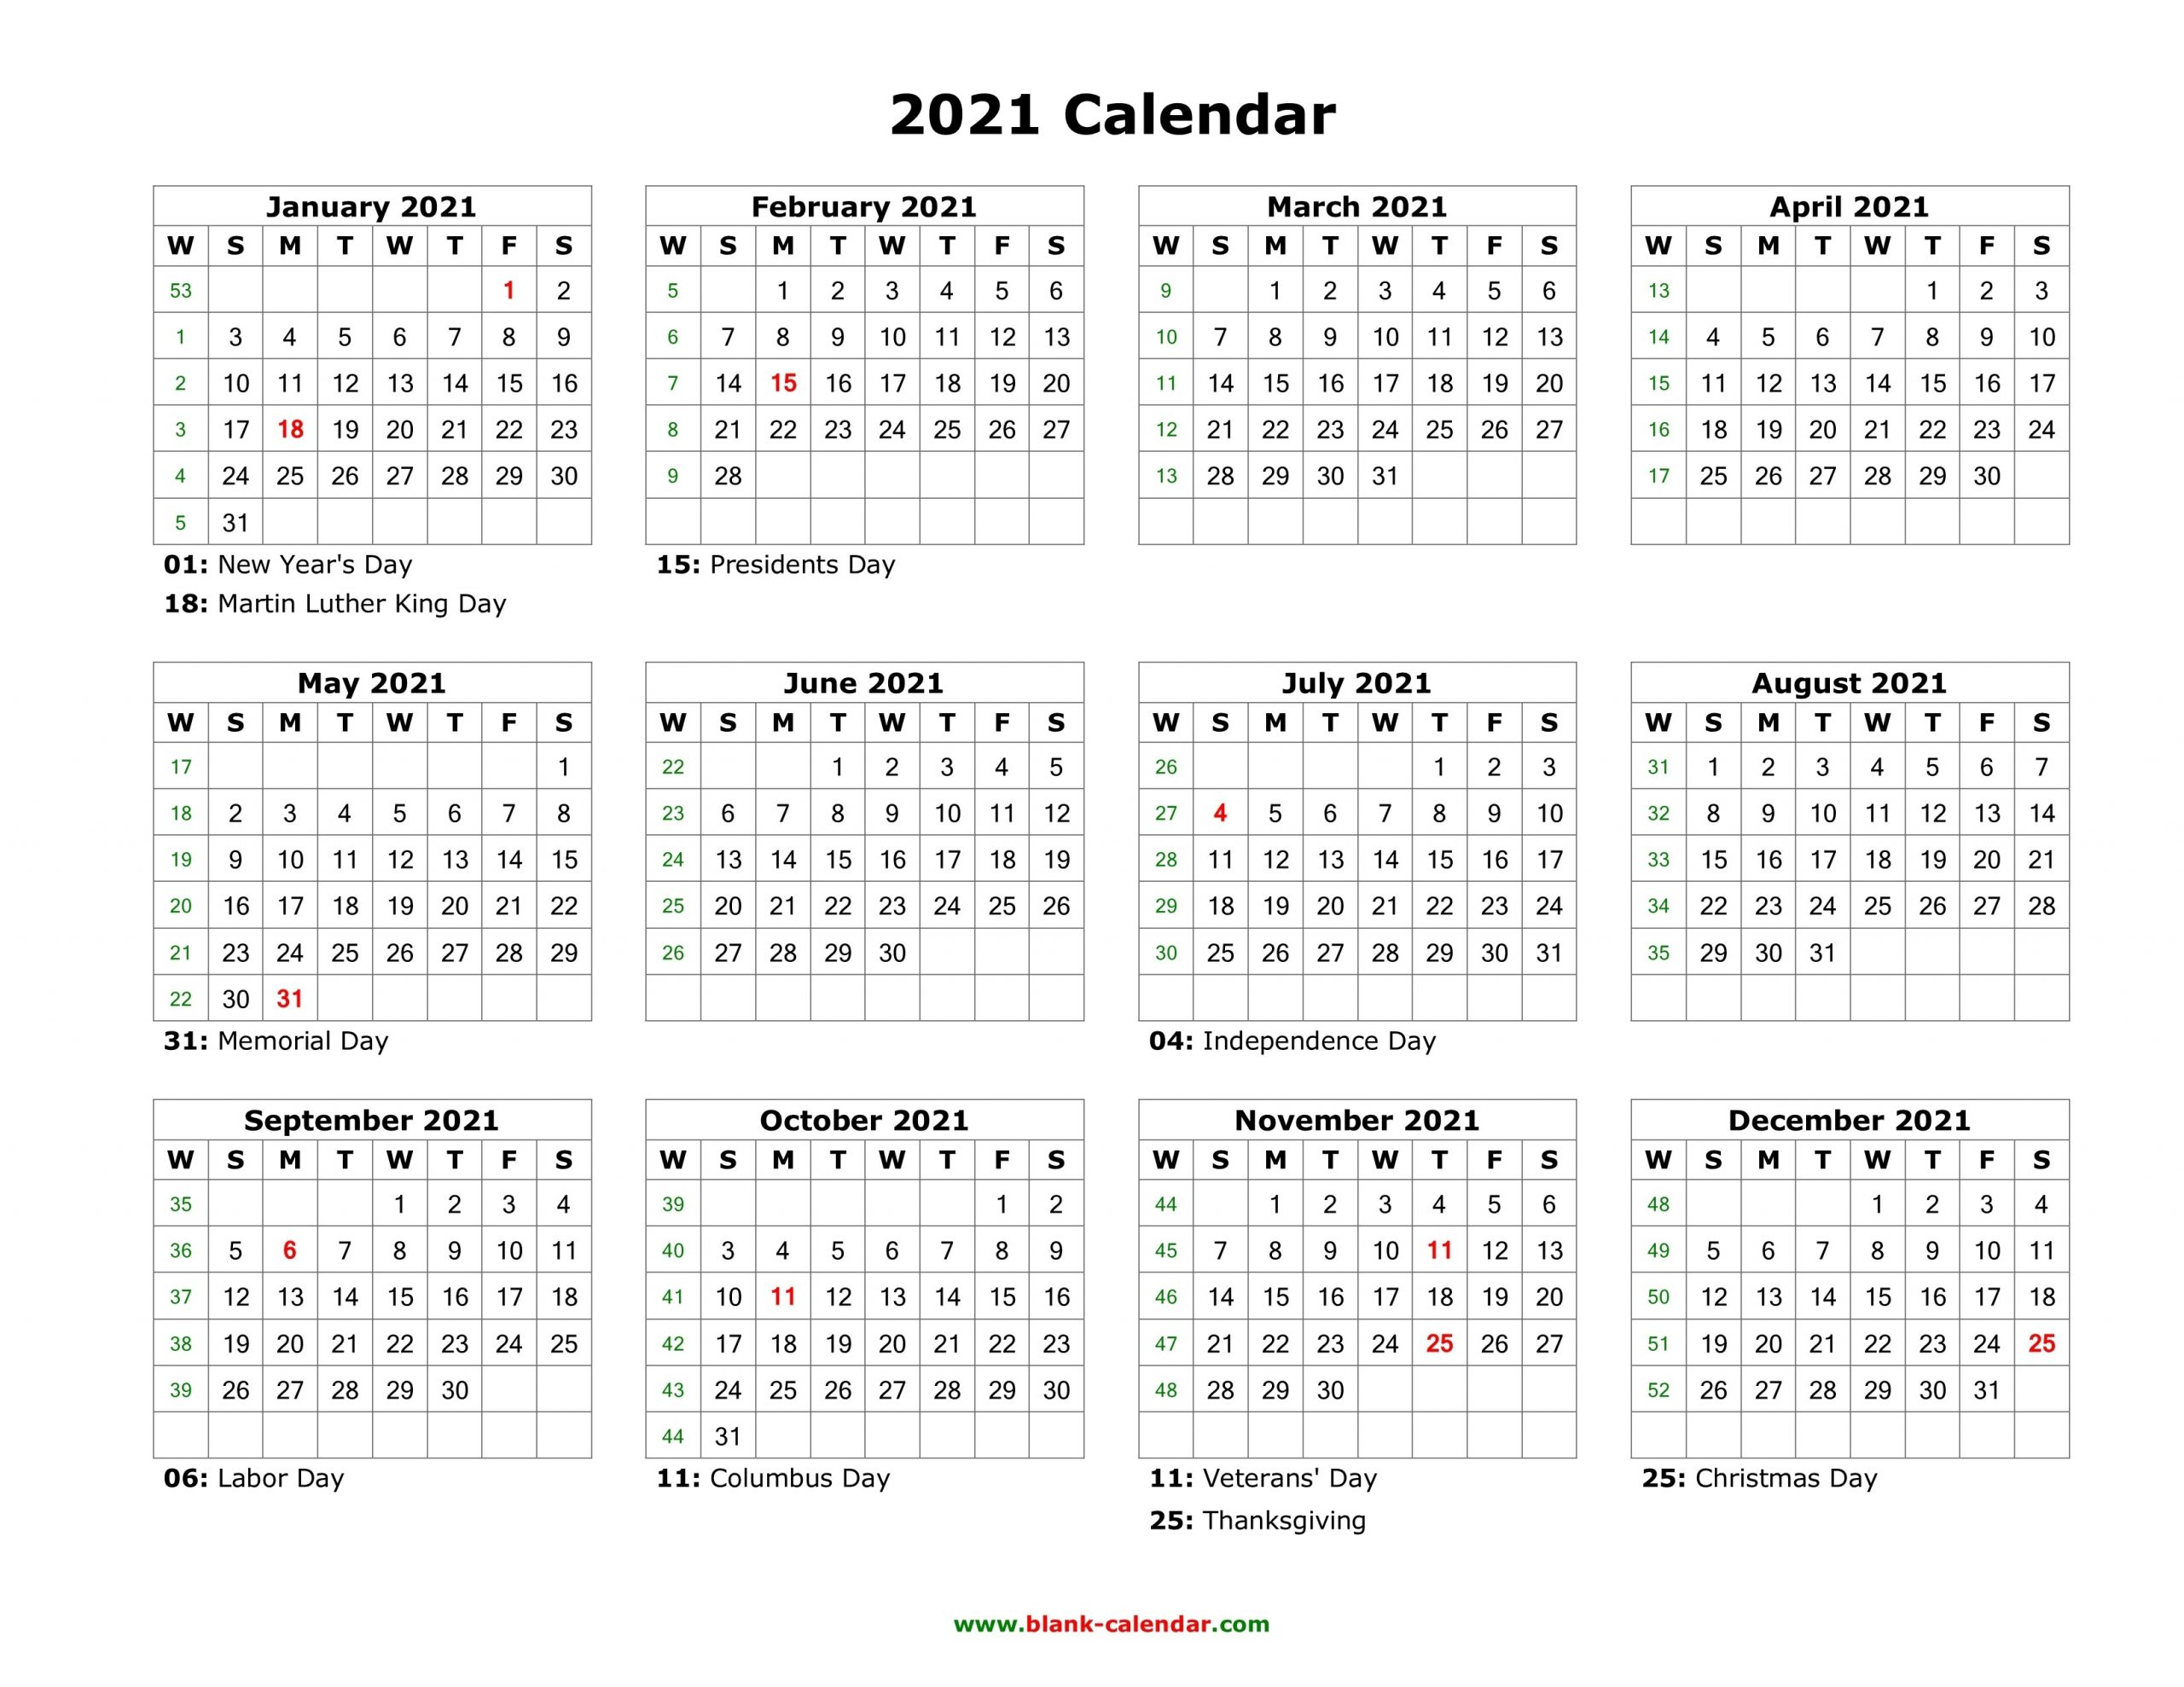 Blank Calendar 2021   Free Download Calendar Templates-2021 Monthly Fill In The Blanks Print Out